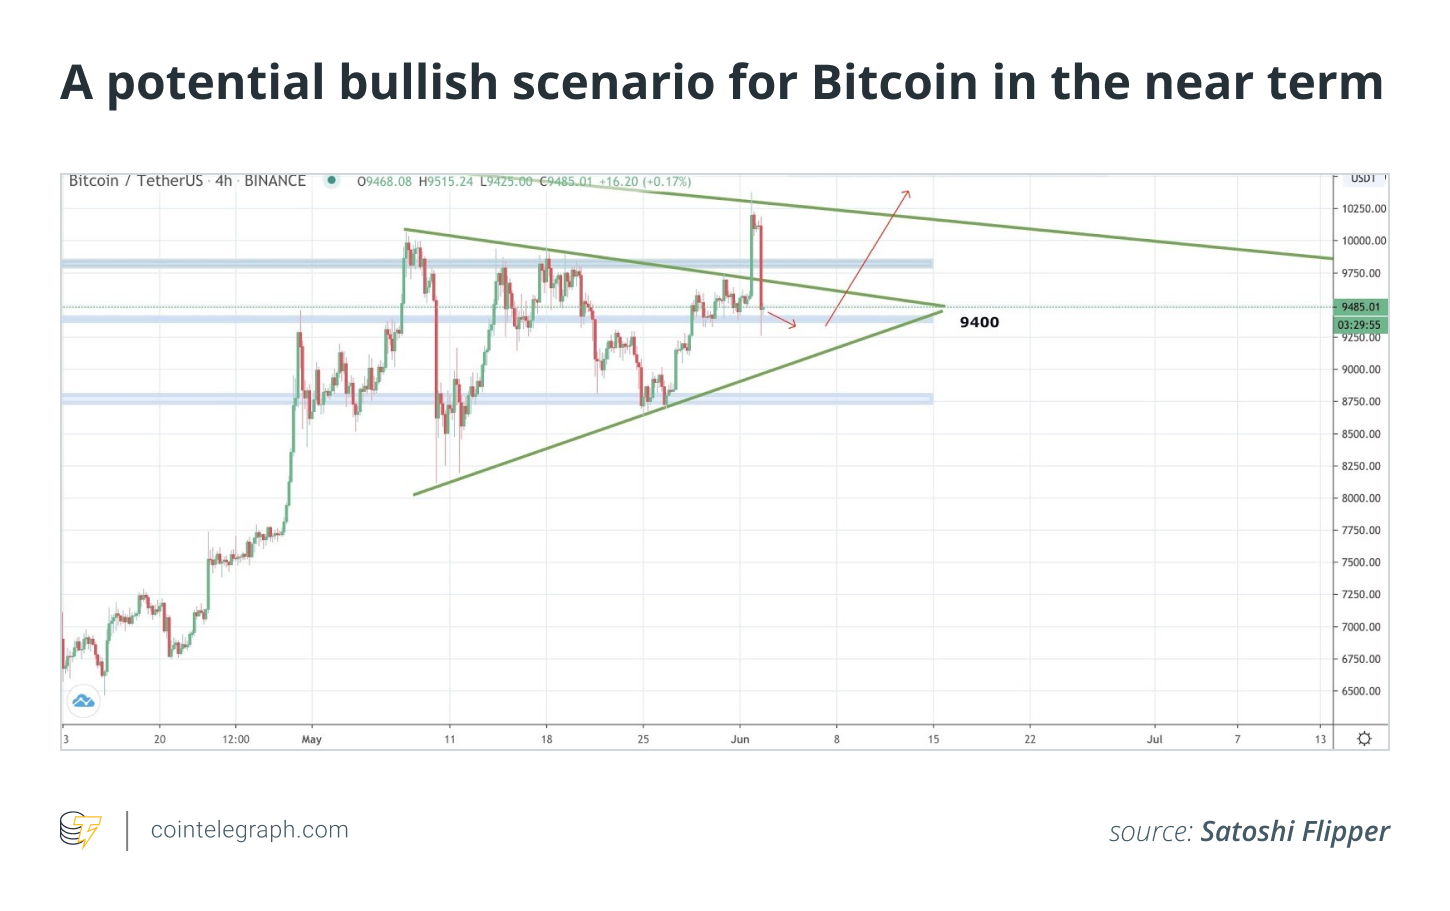 A potential bullish scenario for Bitcoin in the near term